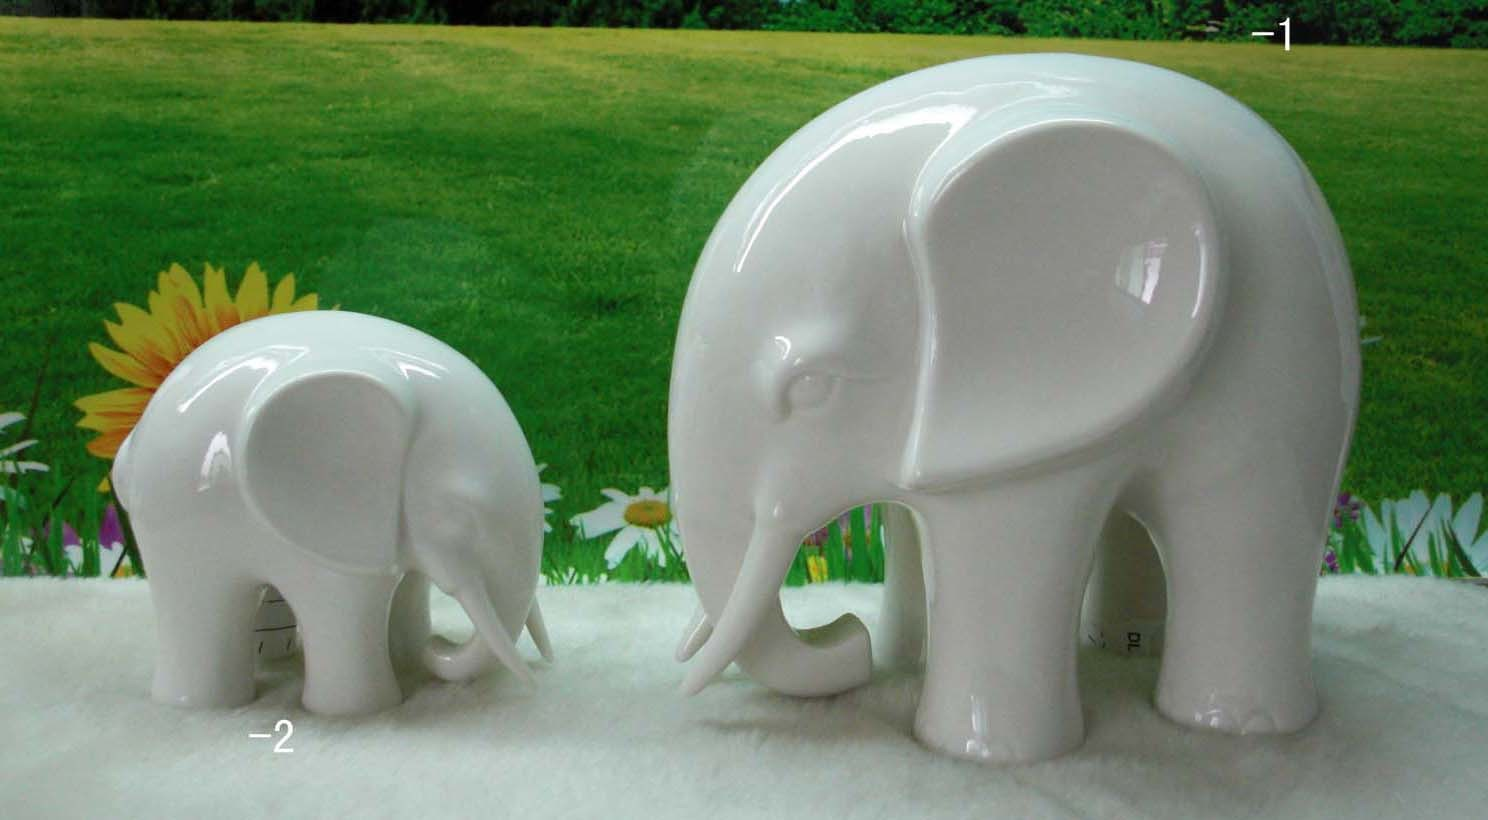 China porcelain elephant decorations le40 1061 1 2 for Decoration elephant